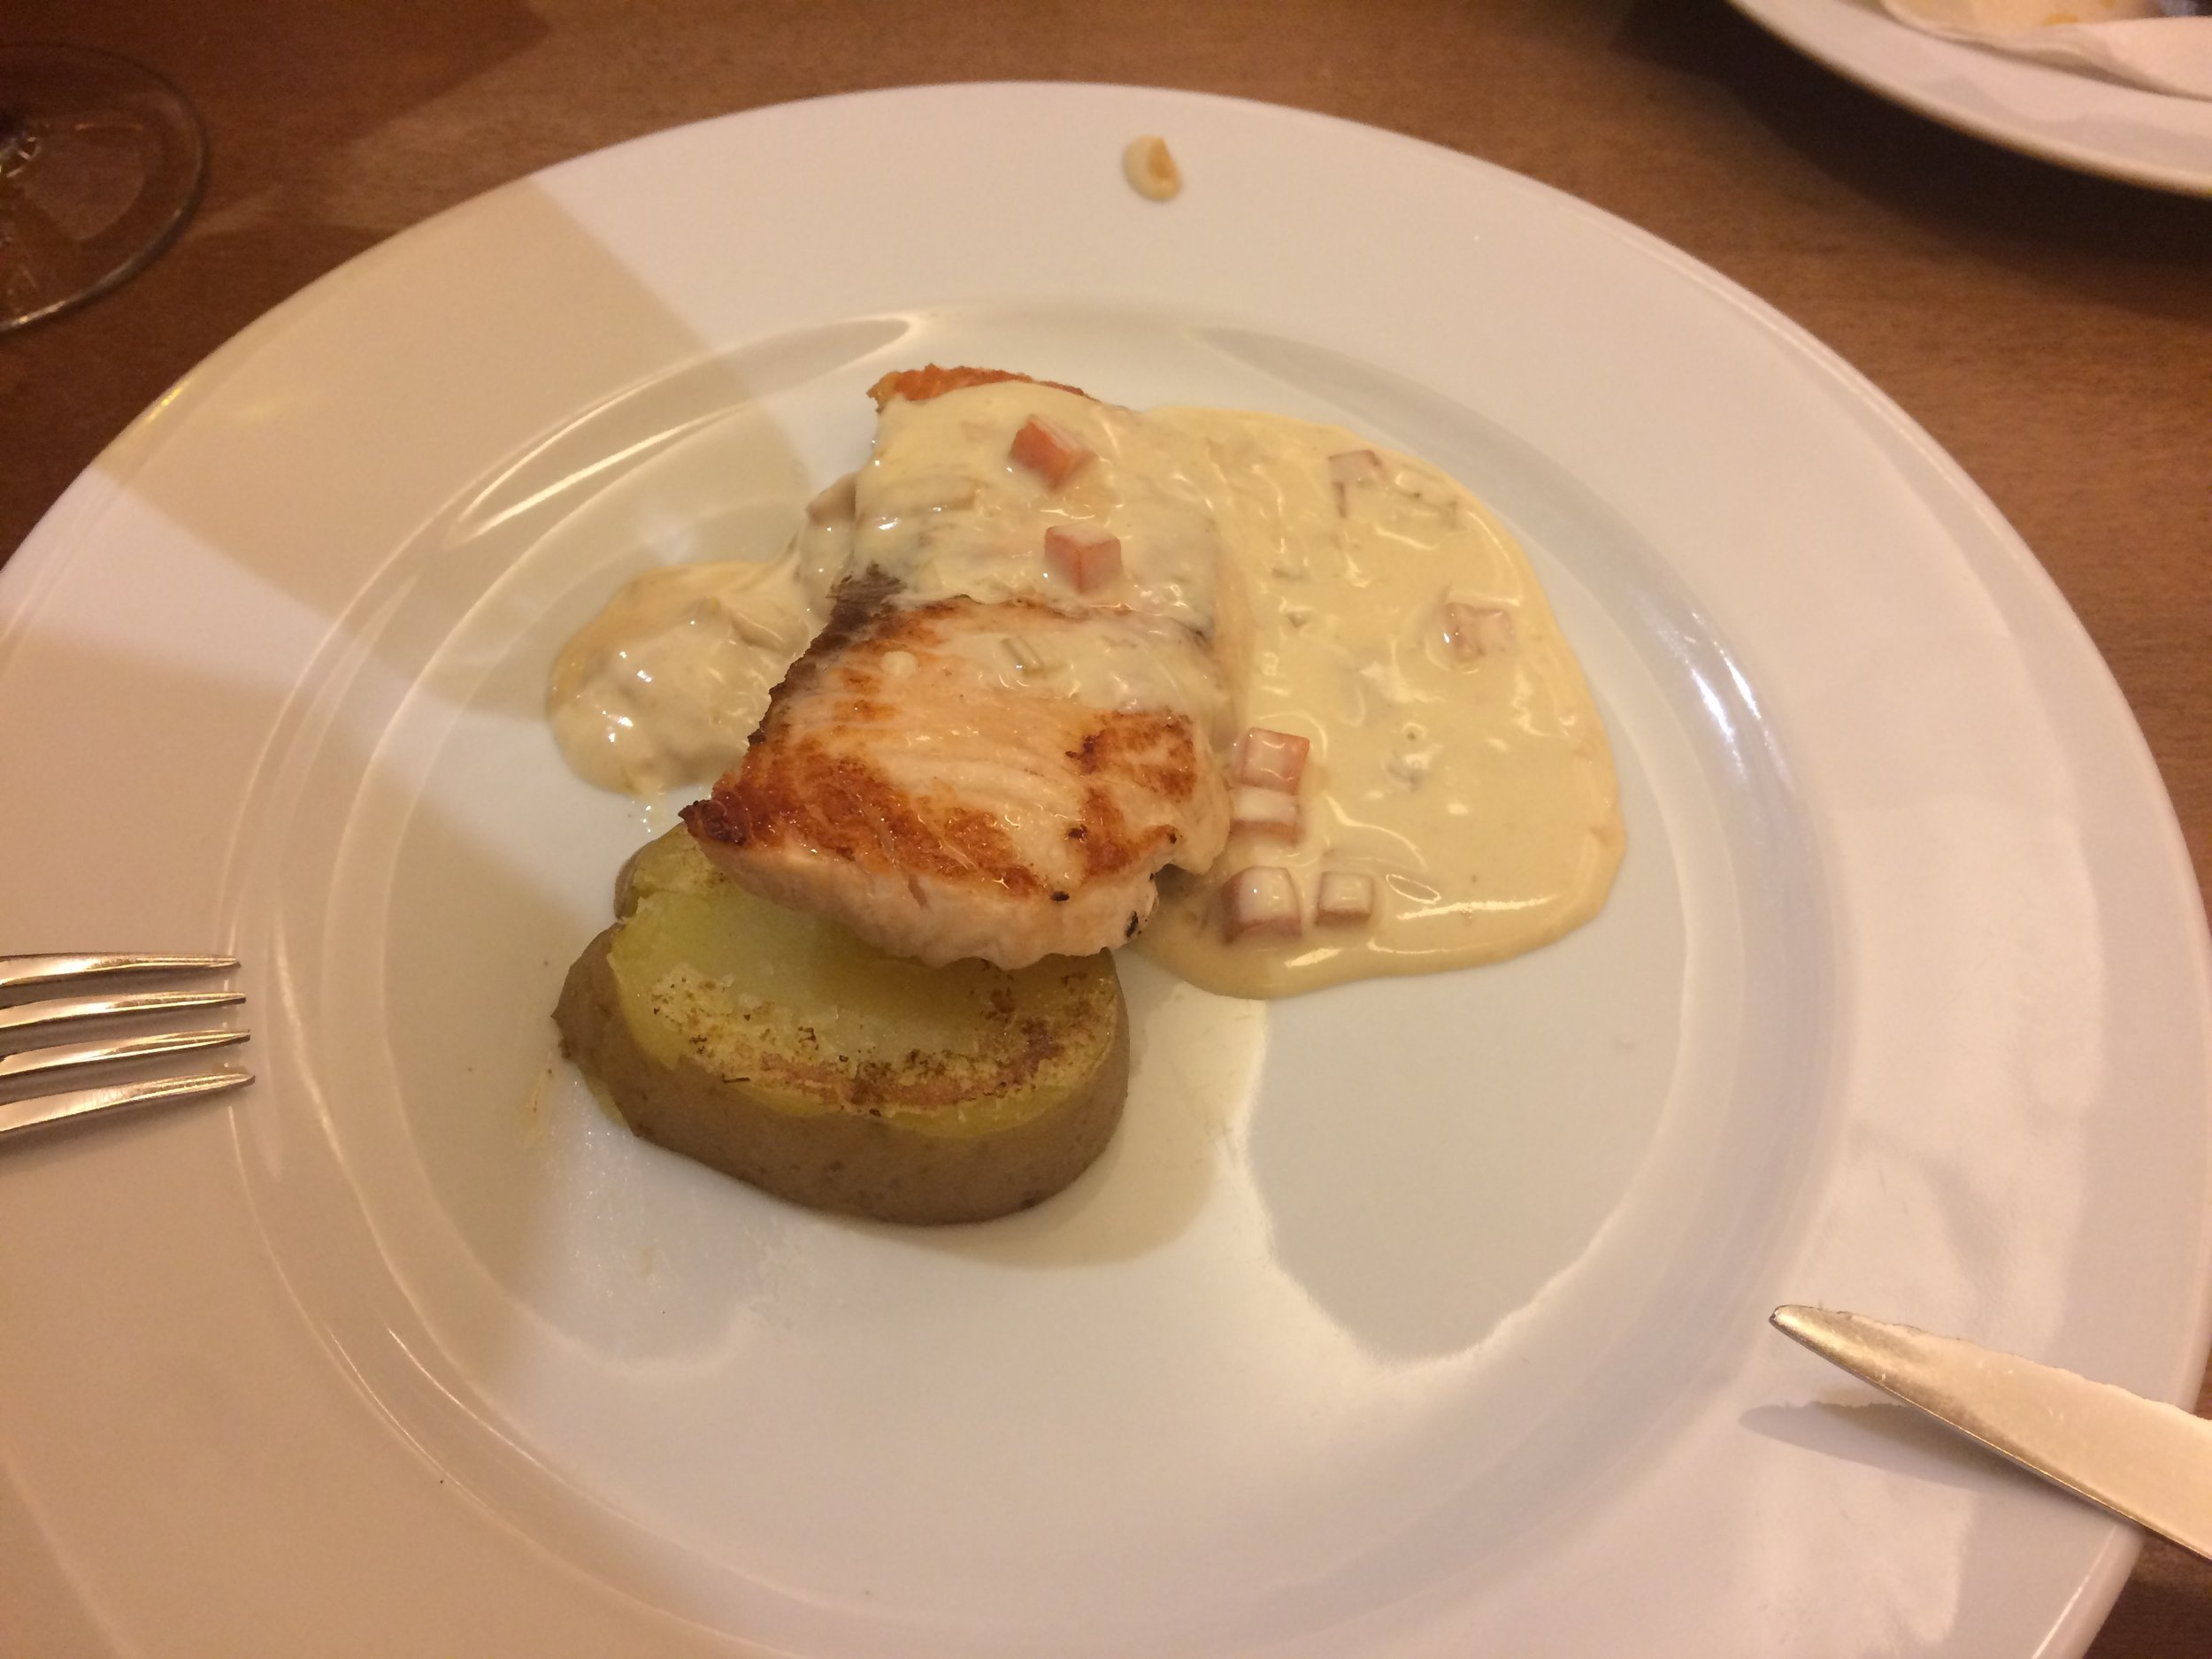 Grilled salmon with leek sauce